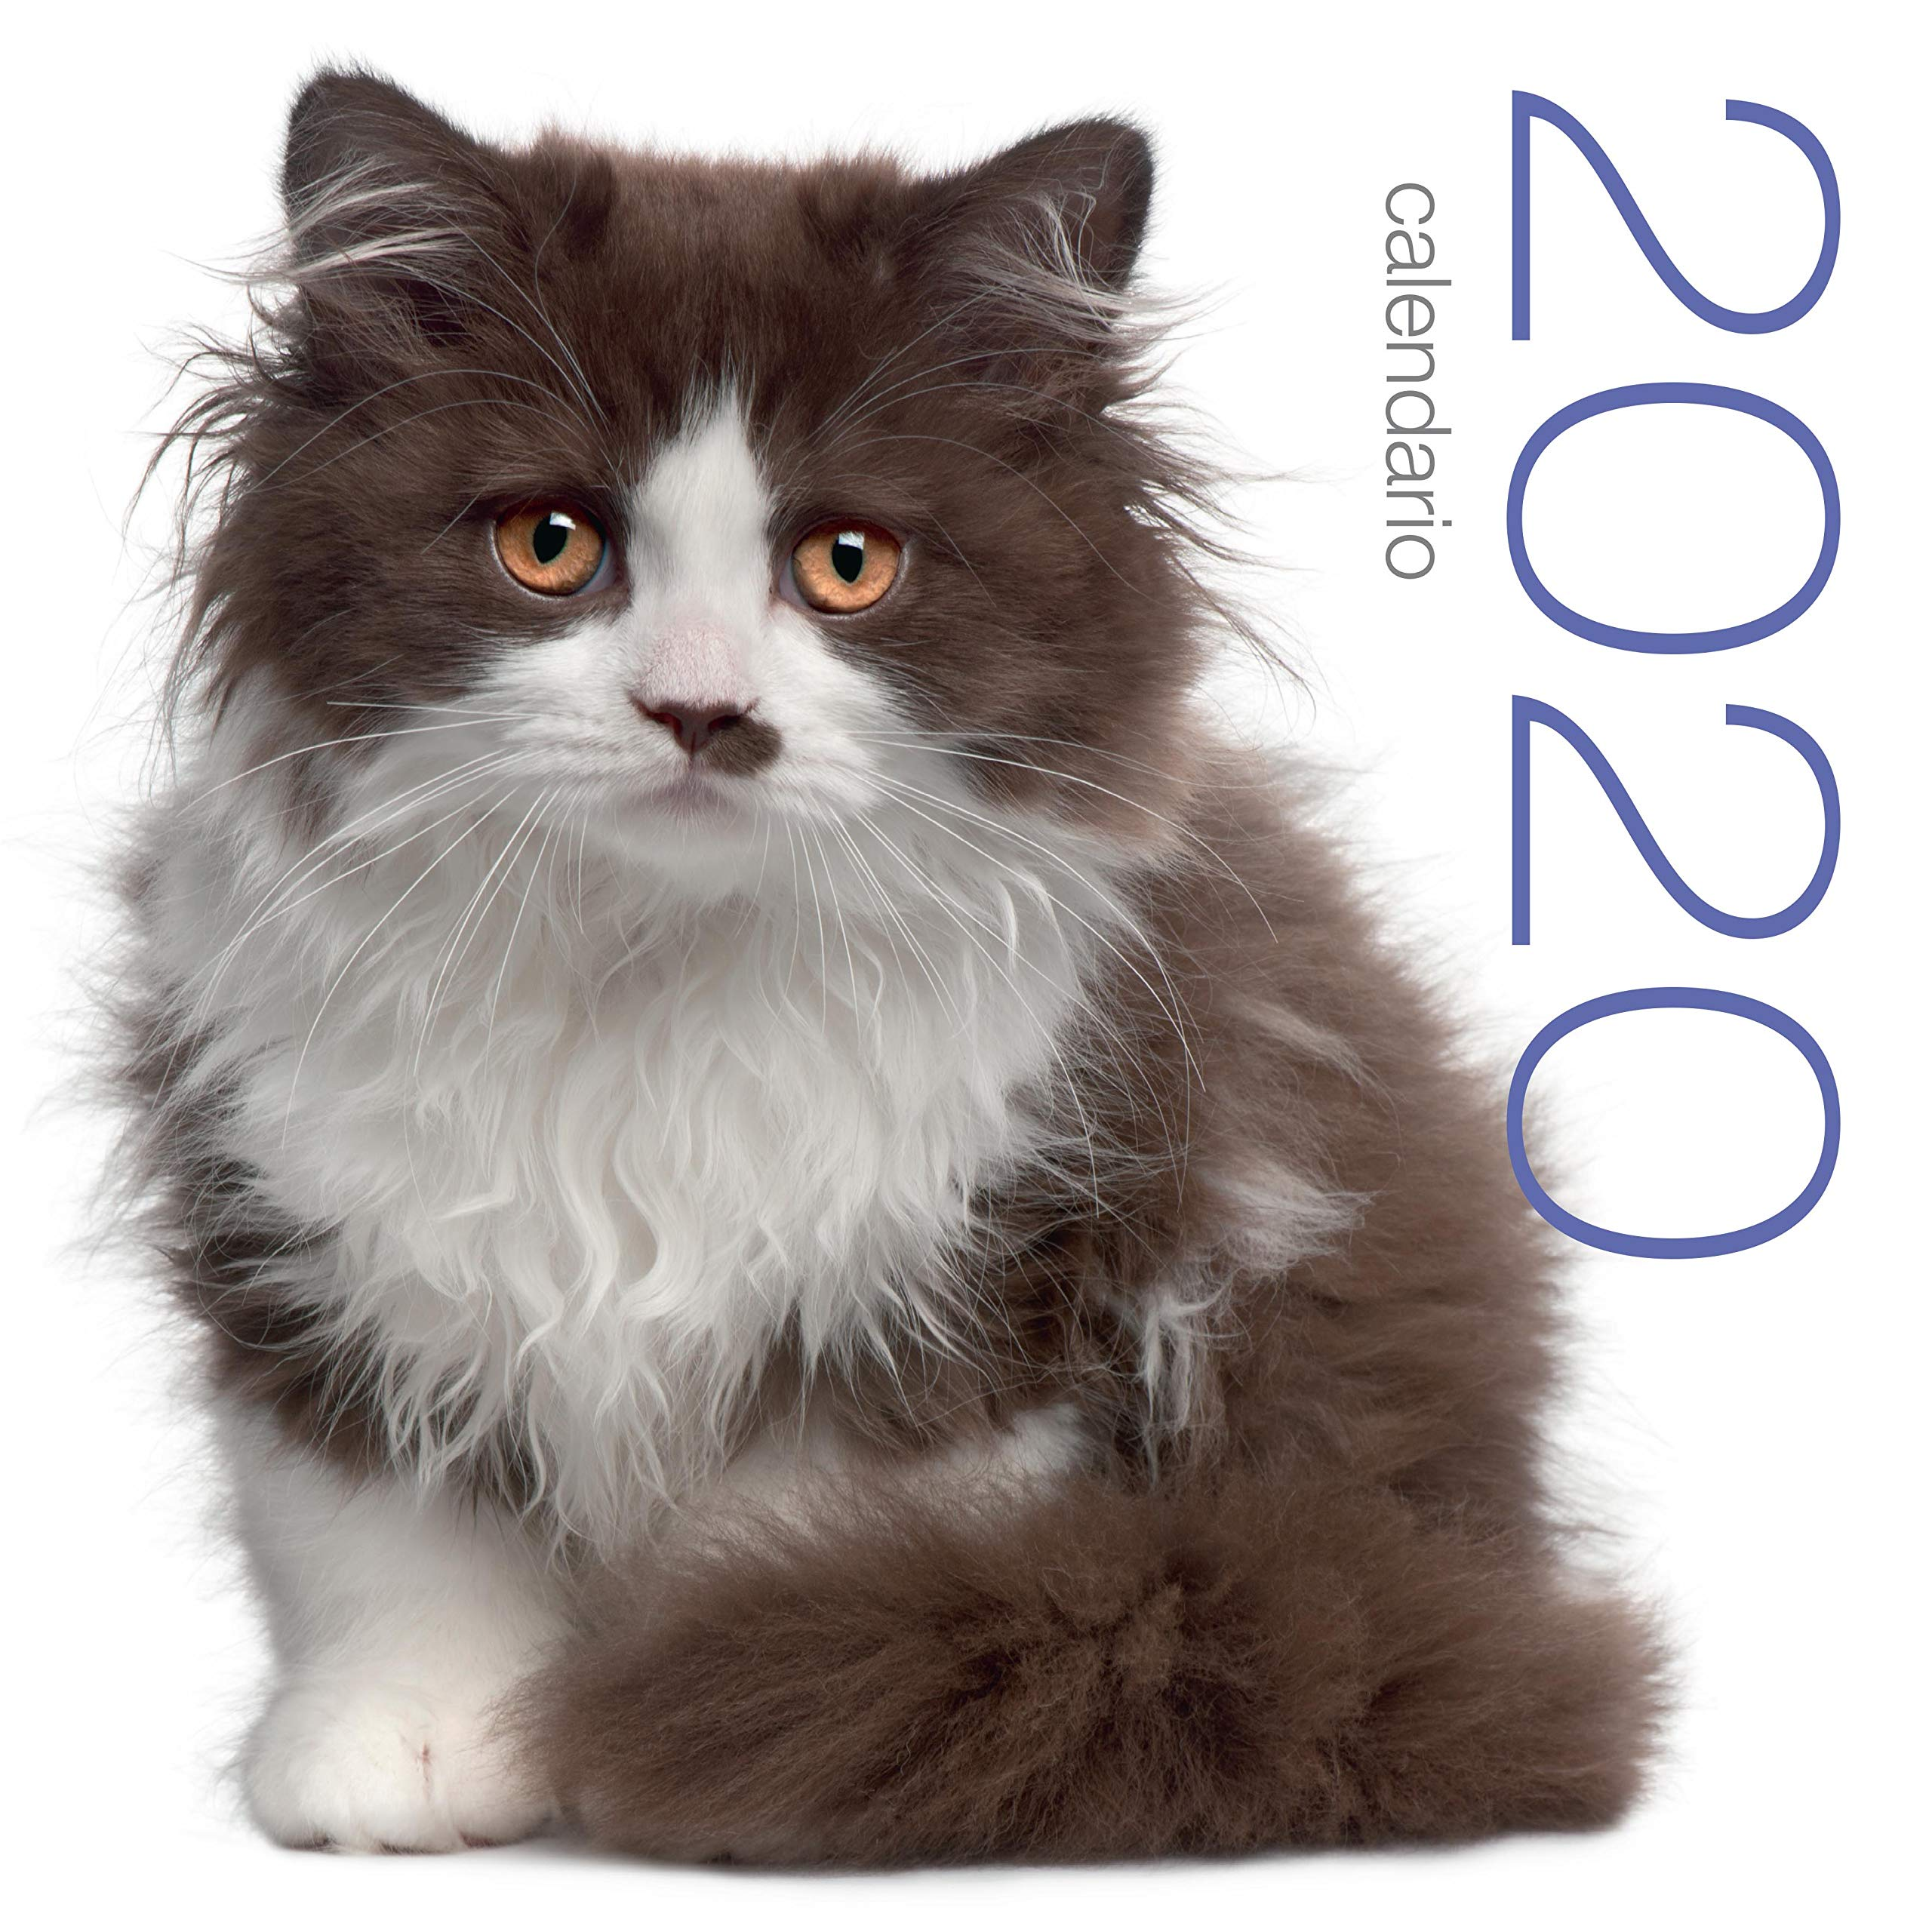 Gatos. Calendario 2020 de pared.: Amazon.es: Oficina y papelería